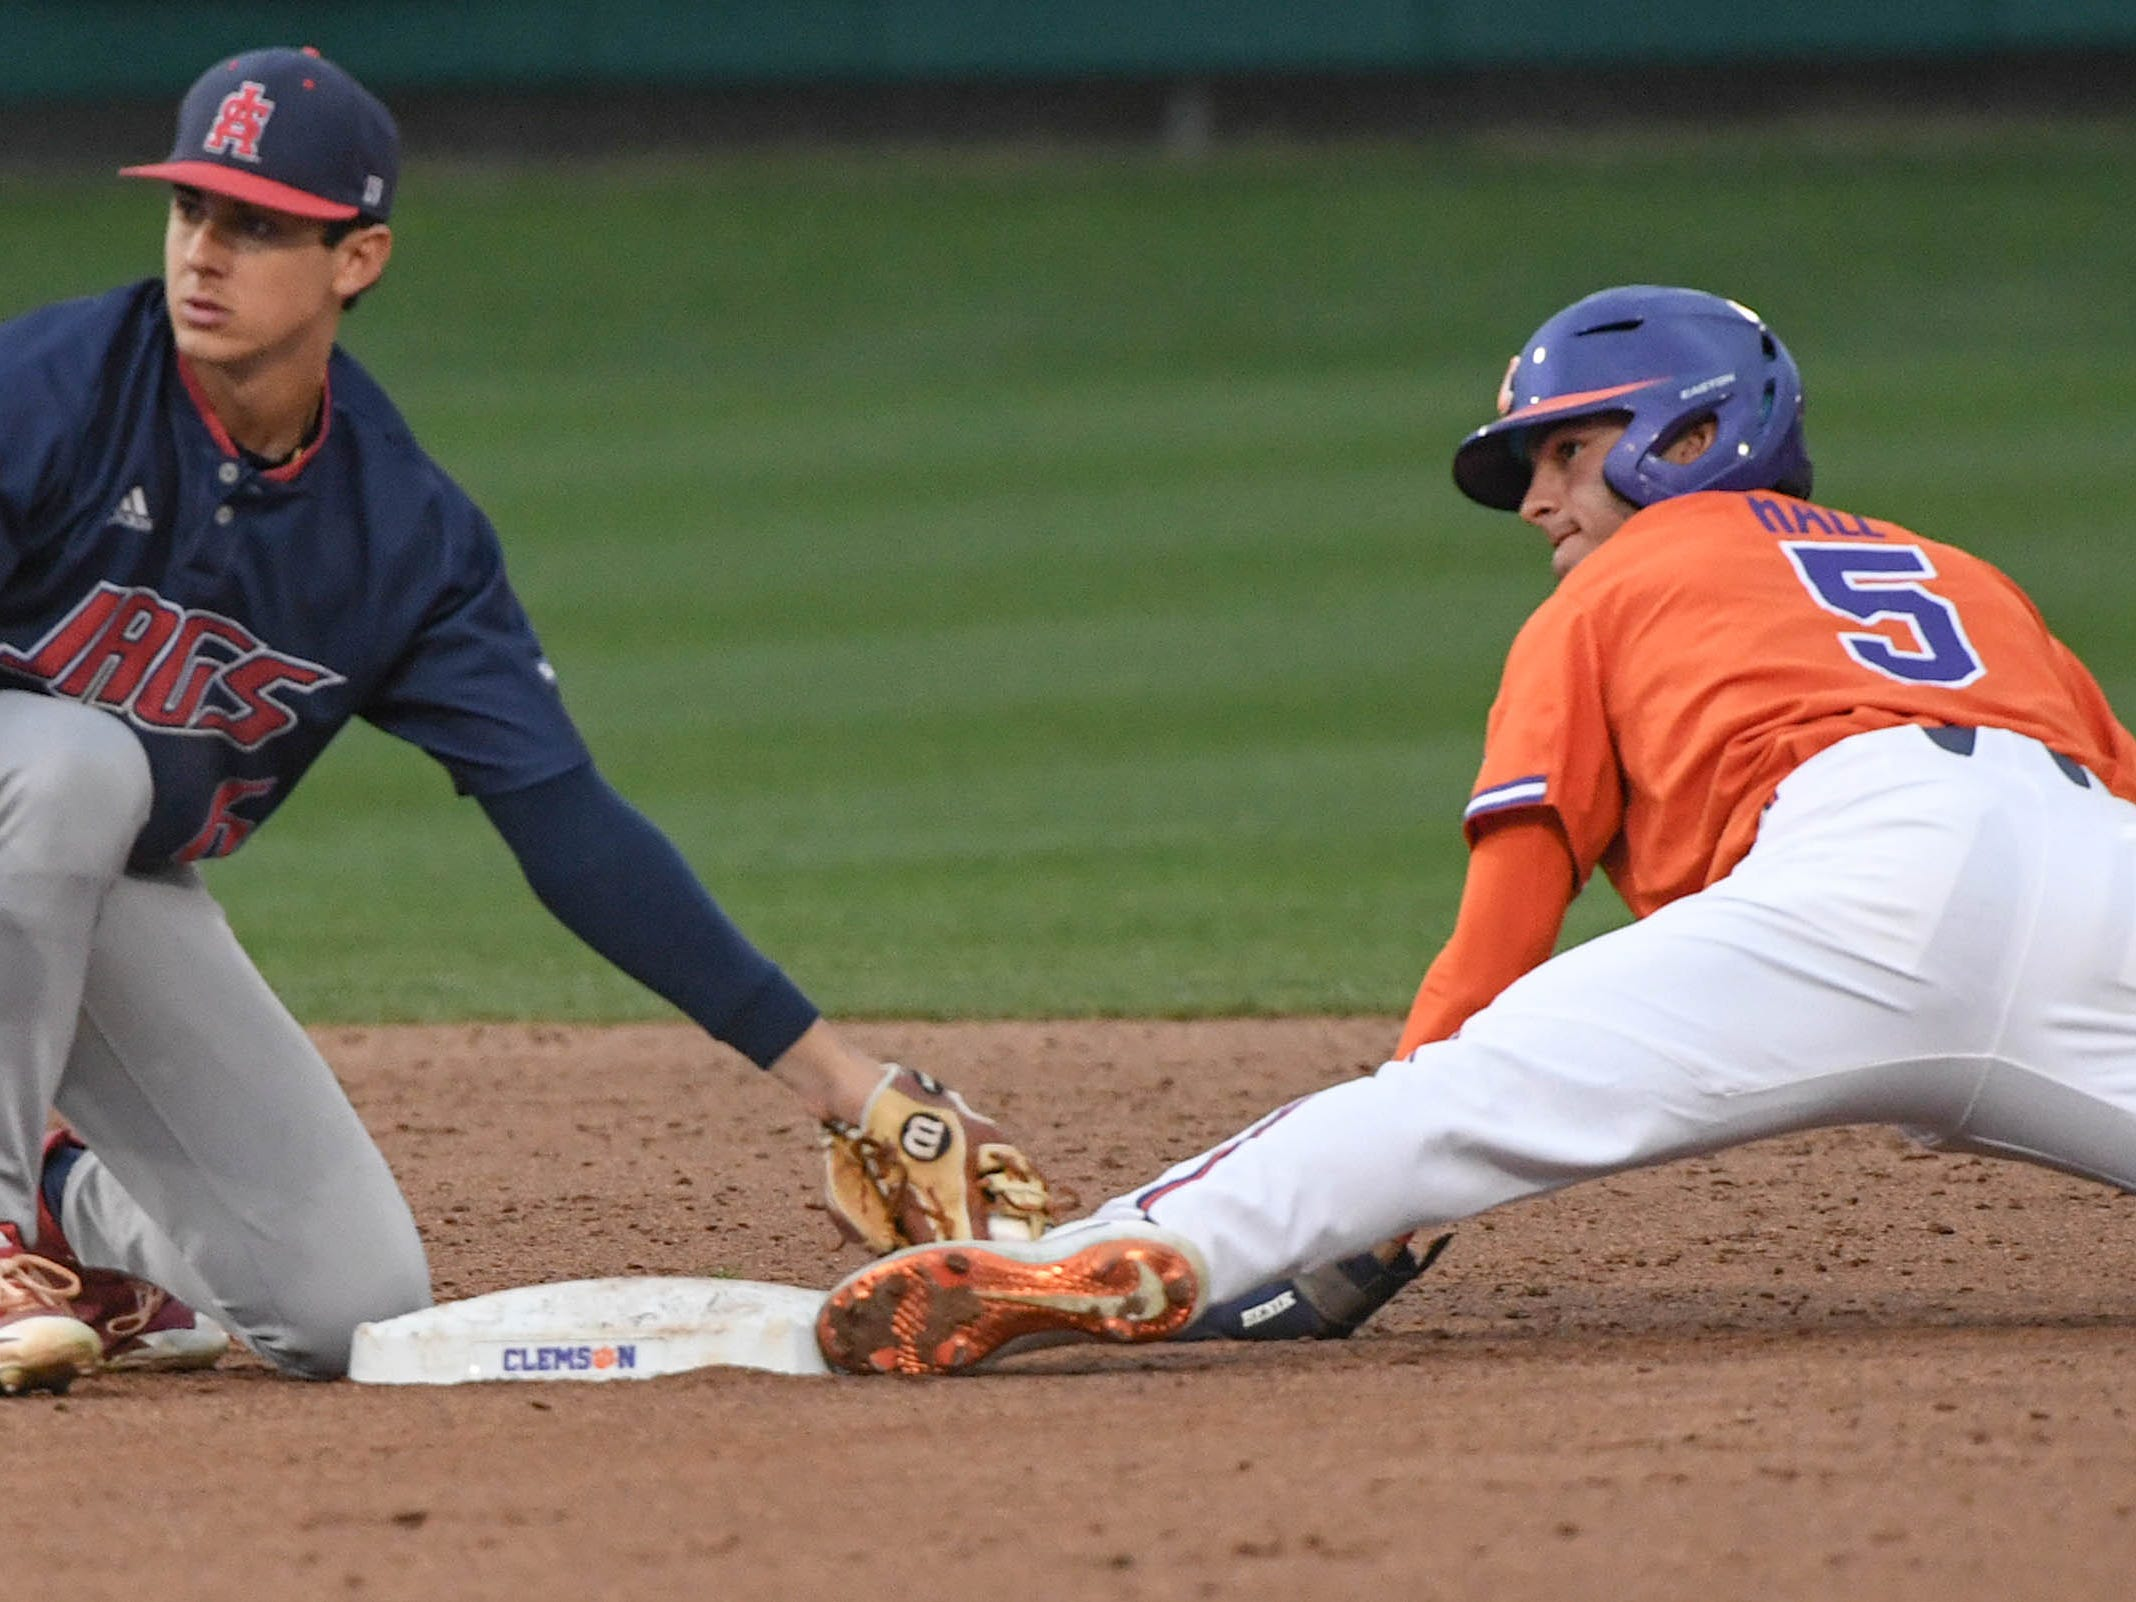 Clemson sophomore Sam Hall(5) steals second base past the tag of South Alabama infielder Santi Montiel (6) during the bottom of the eighth inning at Doug Kingsmore Stadium in Clemson Friday, February 15, 2019.